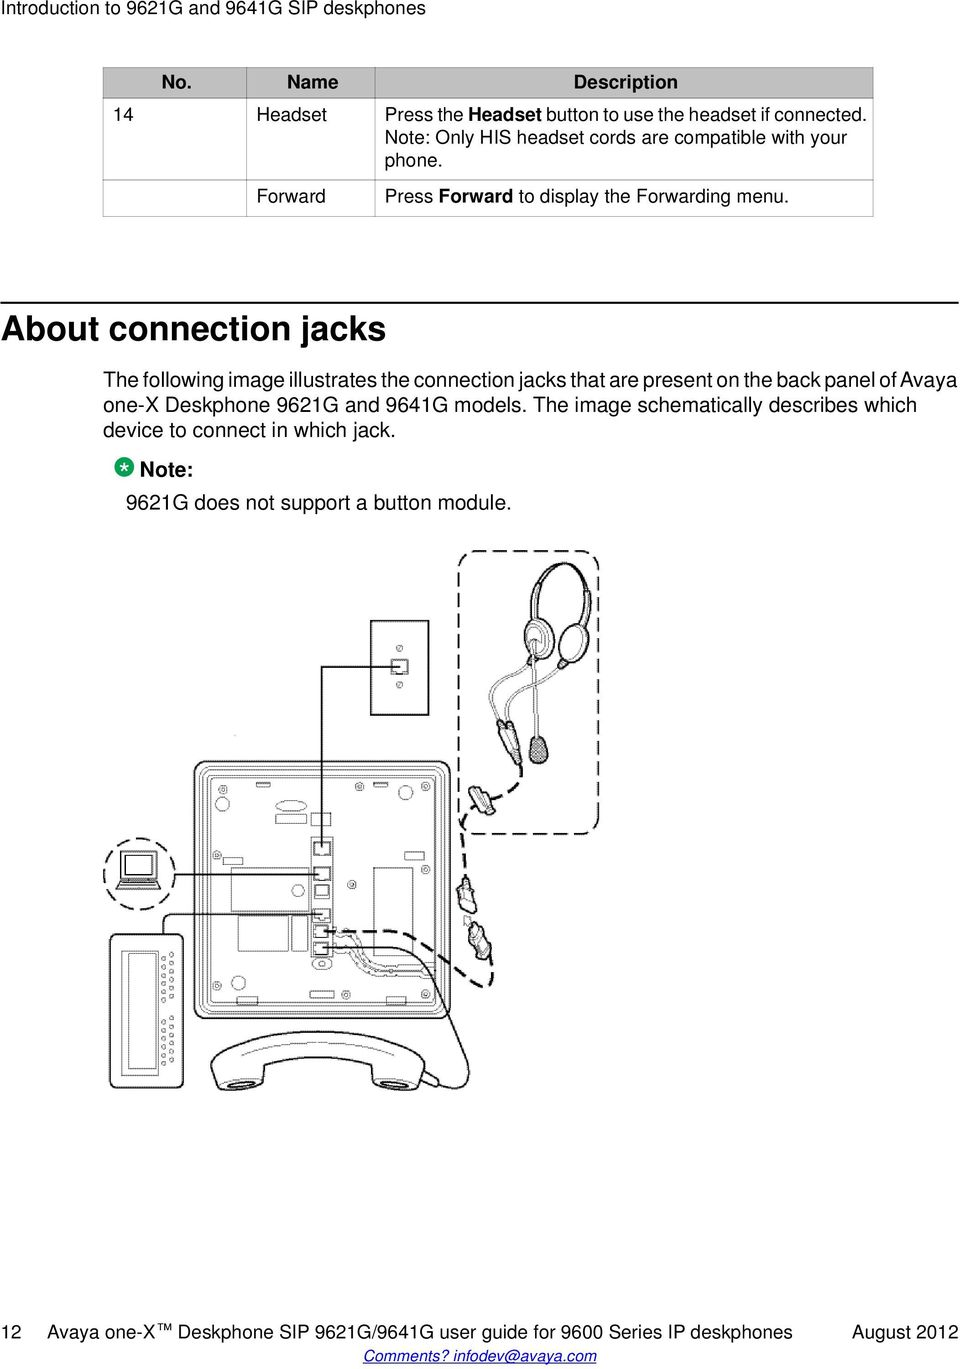 About connection jacks The following image illustrates the connection jacks that are present on the back panel of Avaya one-x Deskphone 9621G and 9641G models.